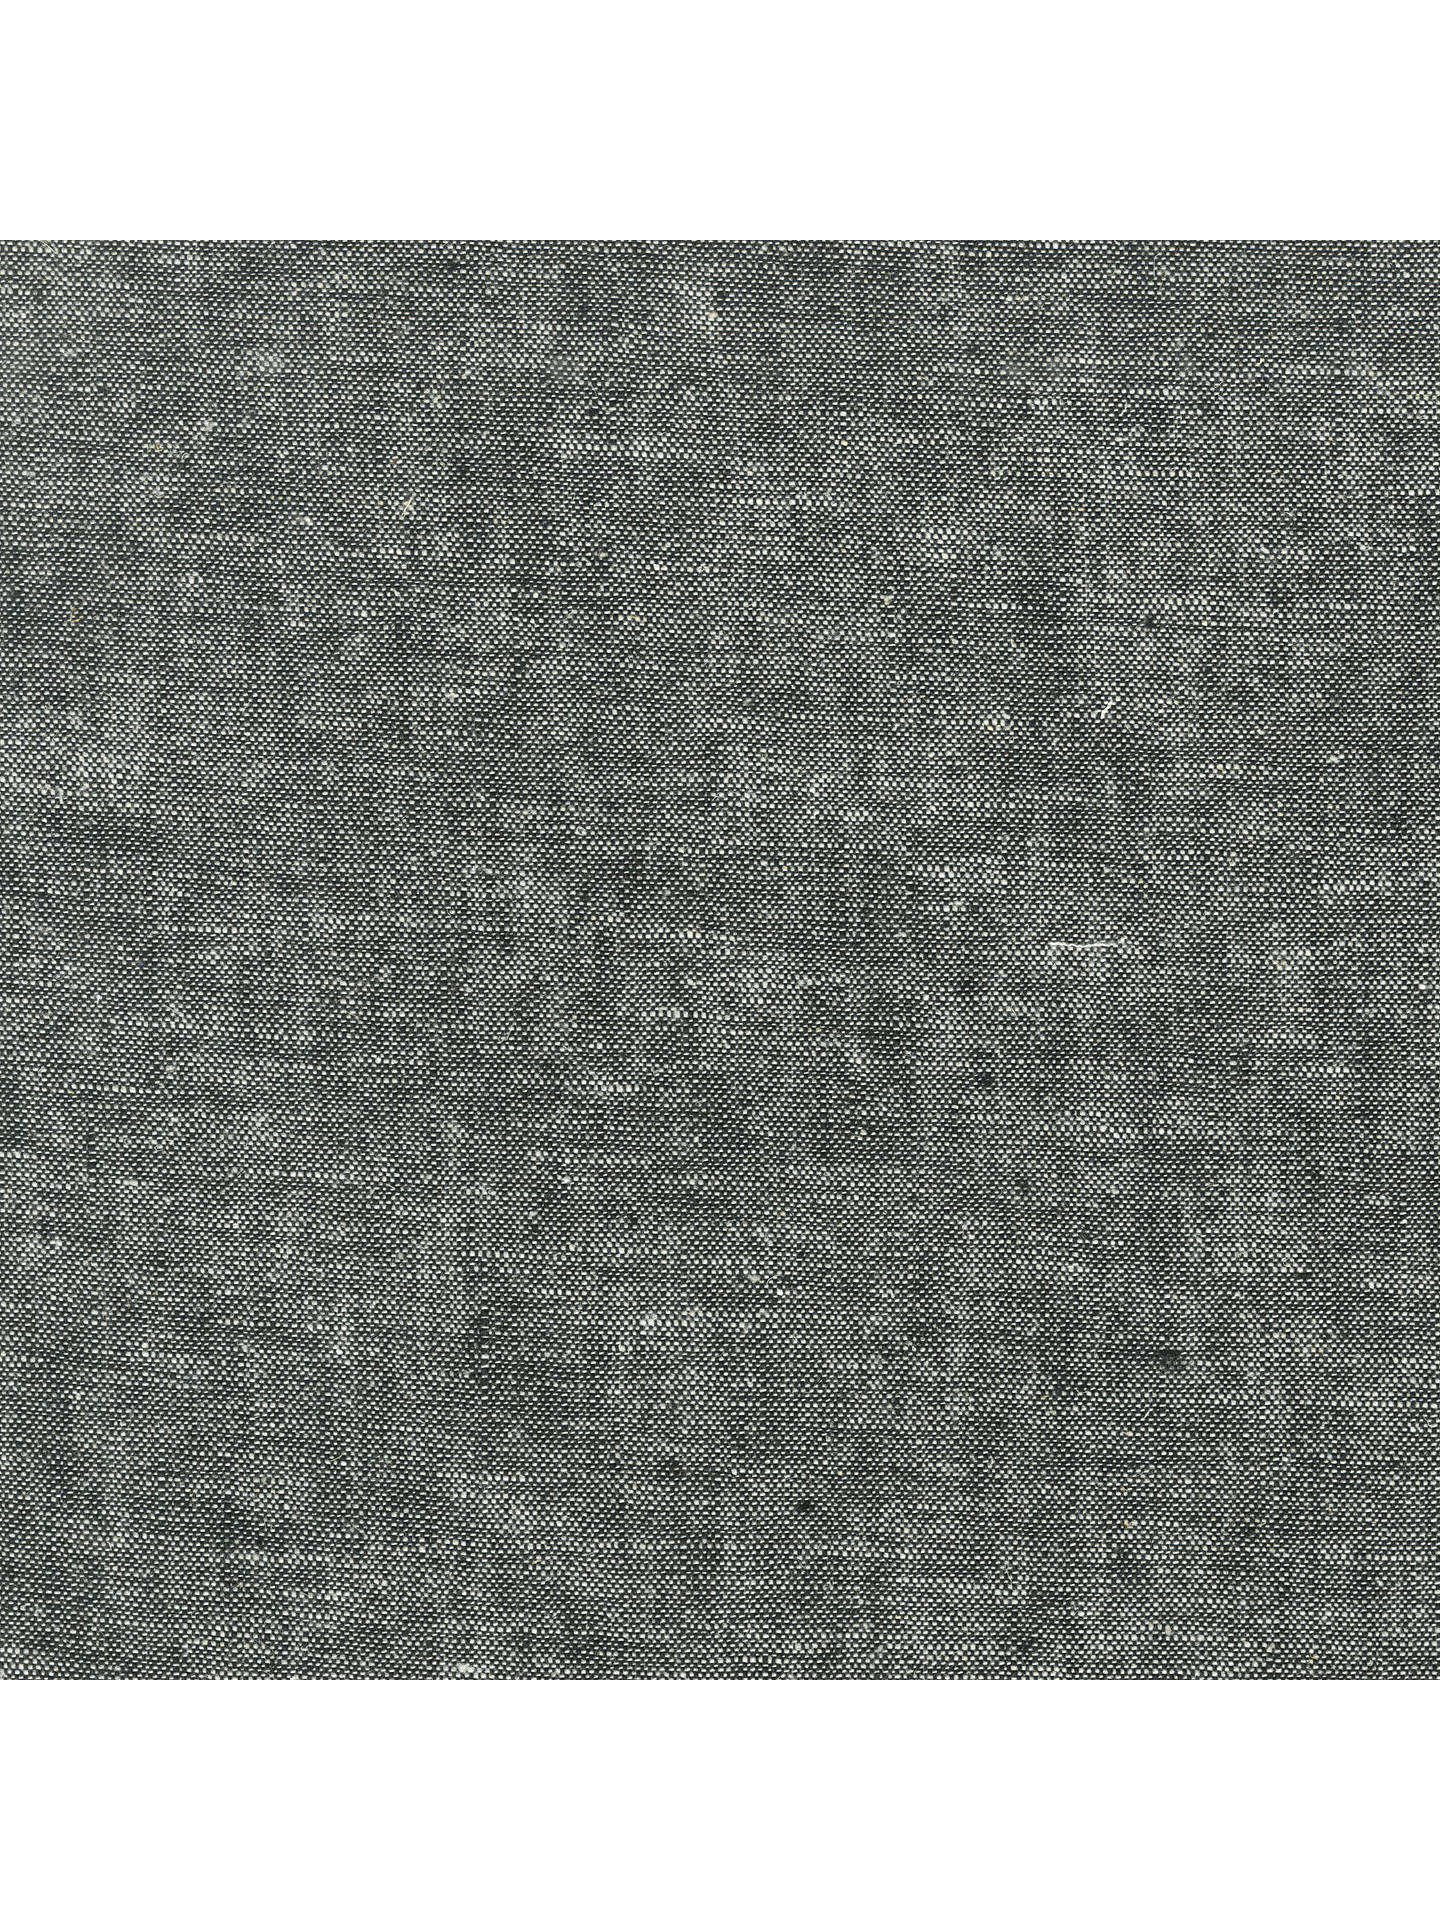 BuyRobert Kaufman Essex Linen Yarn Dye Fabric, Dusty Blue Online at johnlewis.com